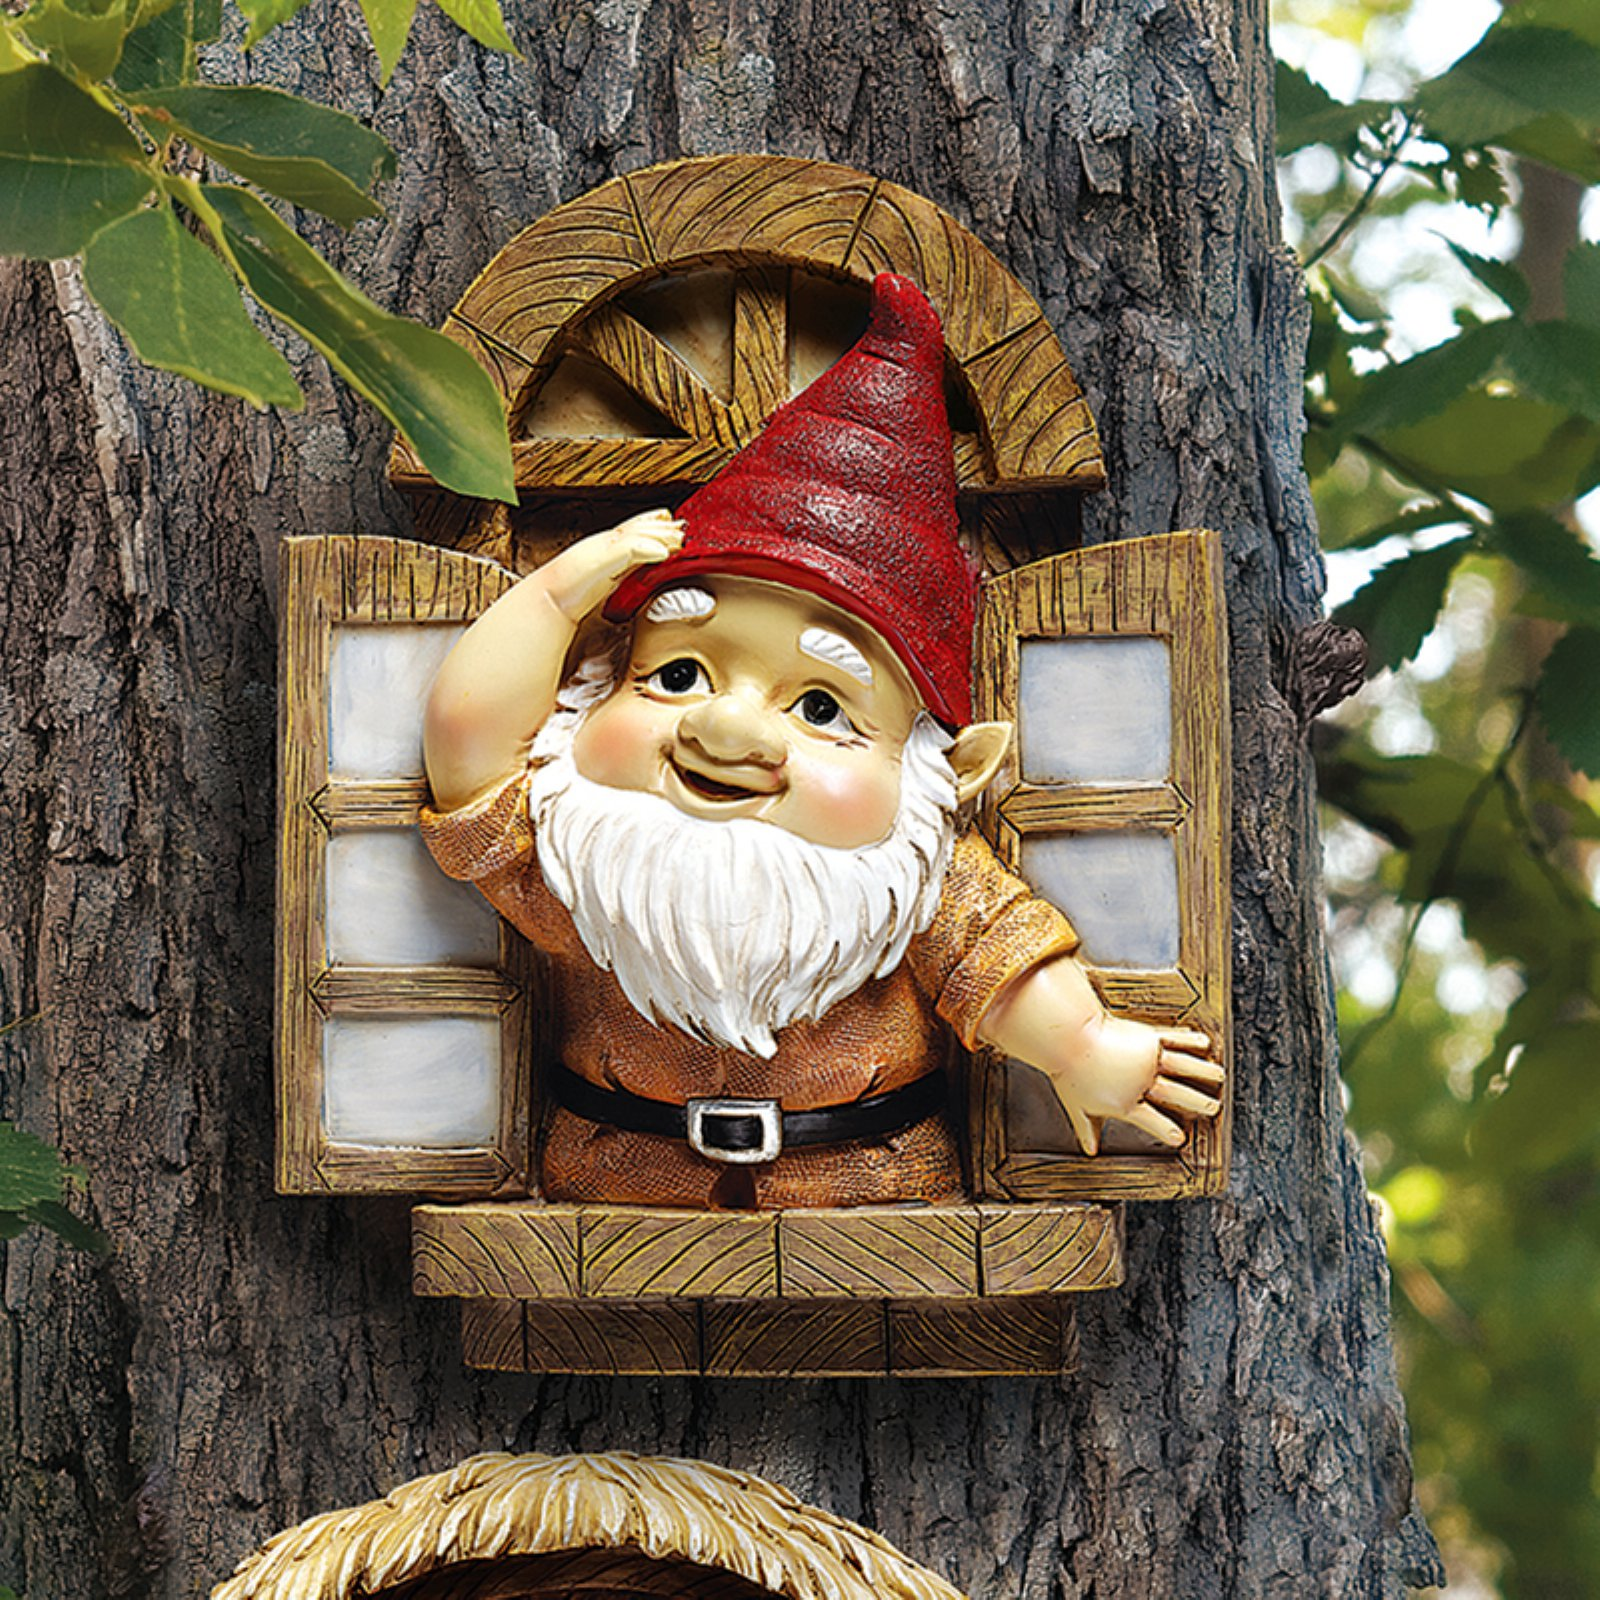 Design Toscano The Knothole Gnomes Garden Welcome Tree Sculpture Window Gnome by Design Toscano